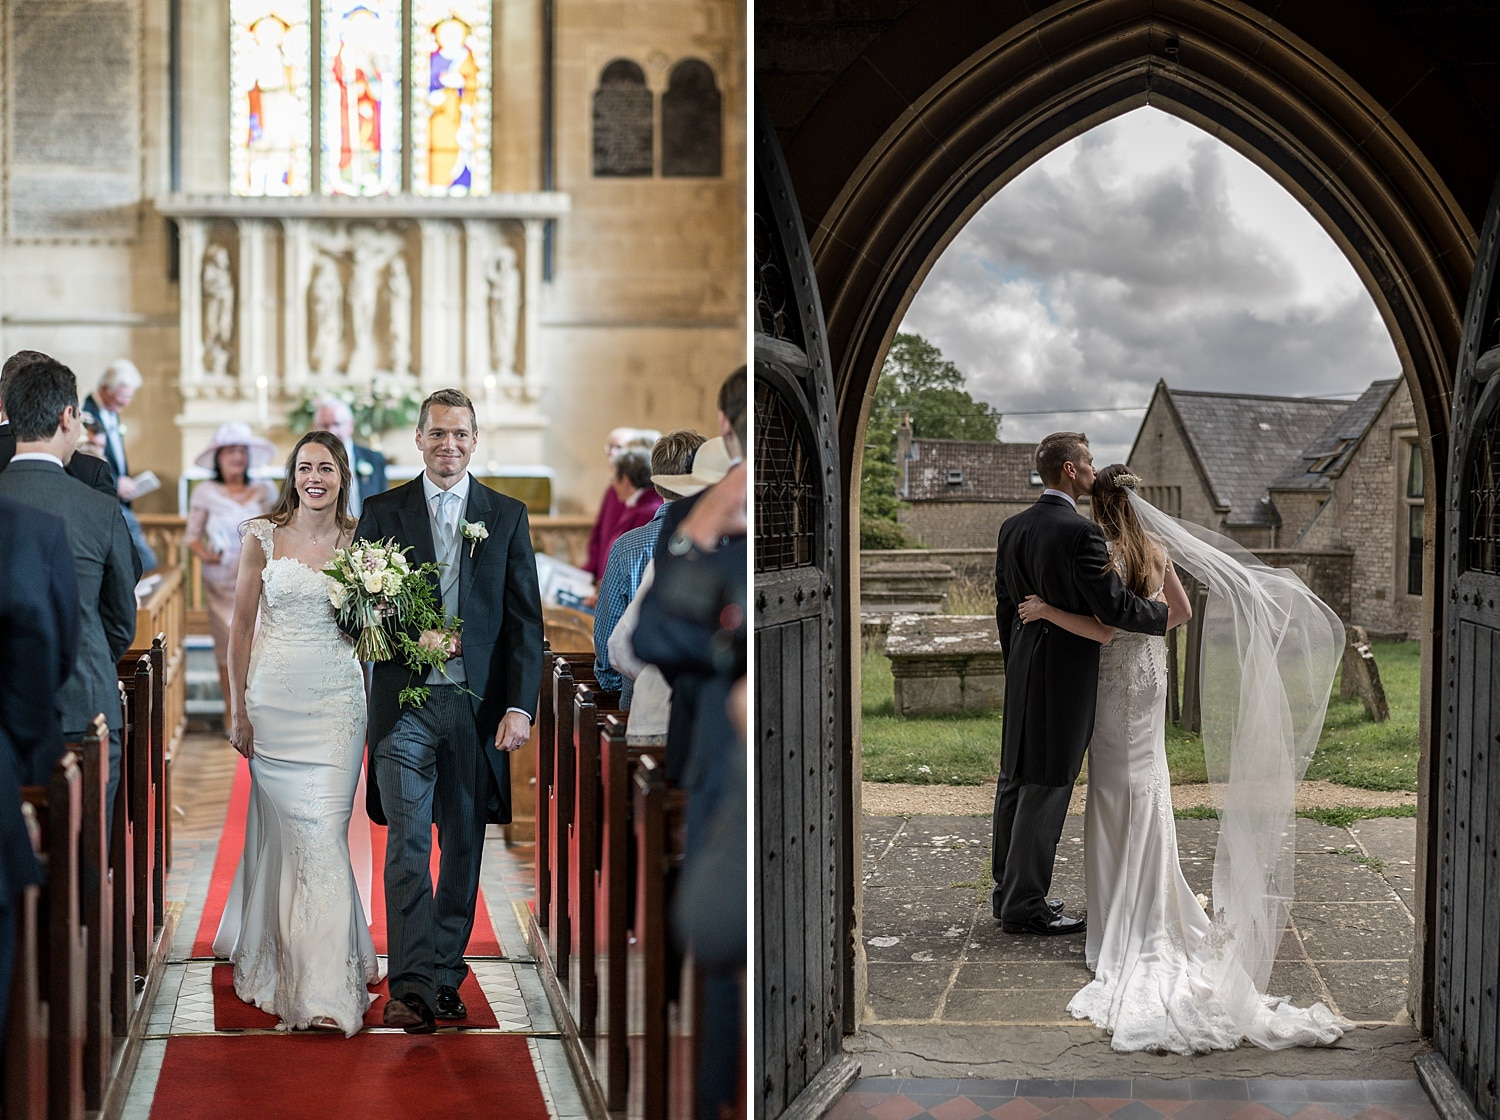 Bride and groom walking down the aisle at Colerne Church